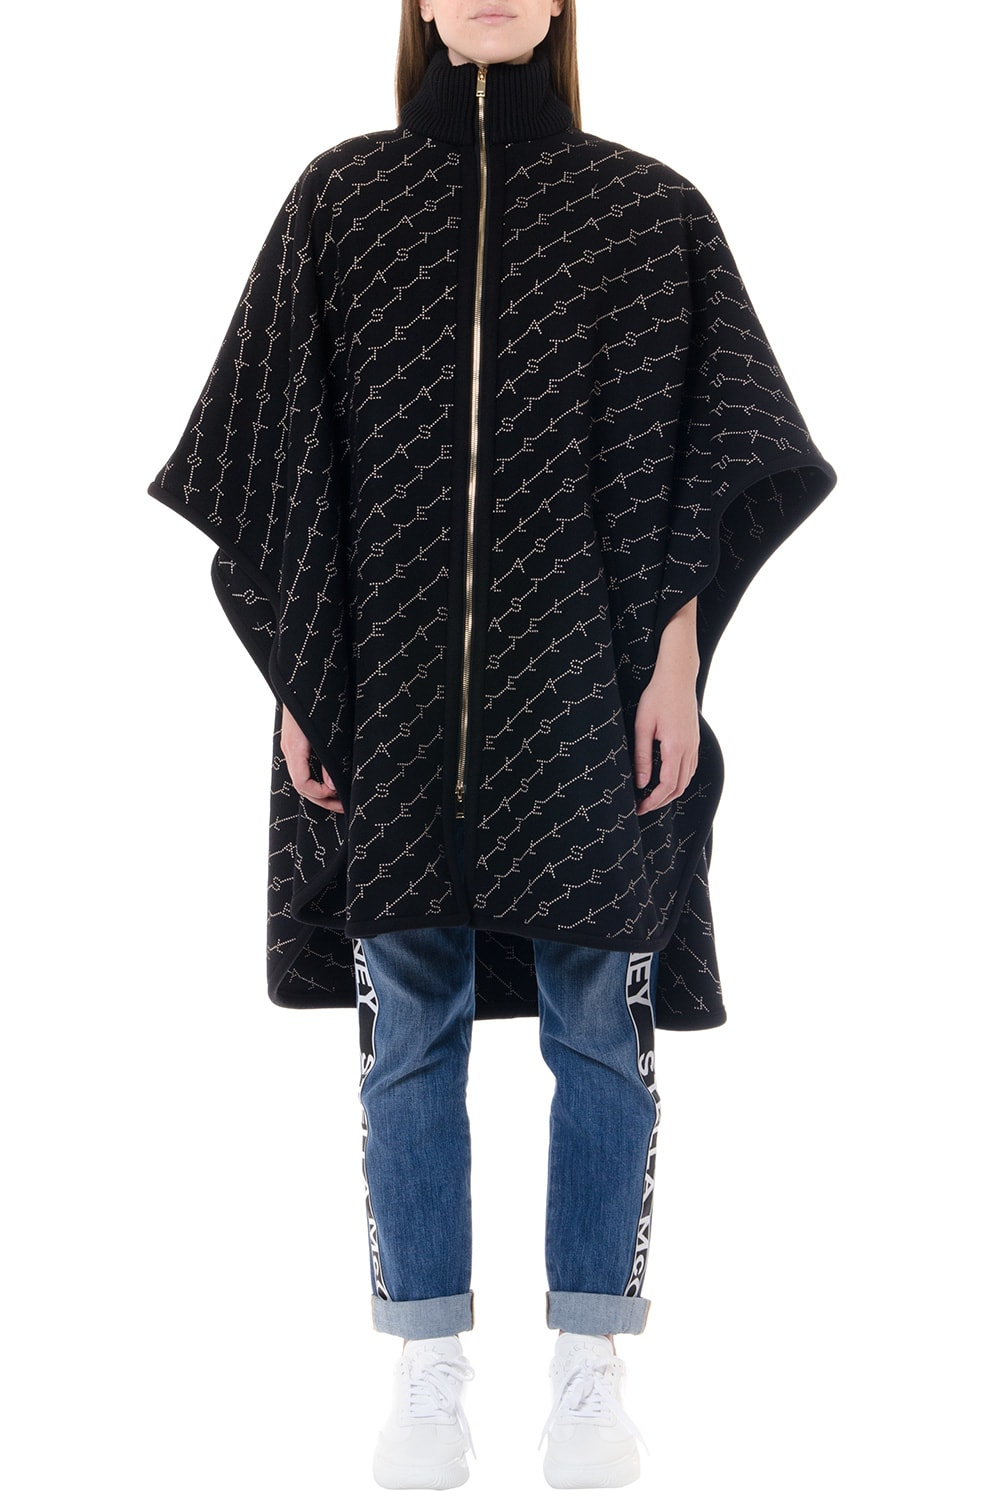 Stella McCartney Black Wool Cape With Monogram Embroidery